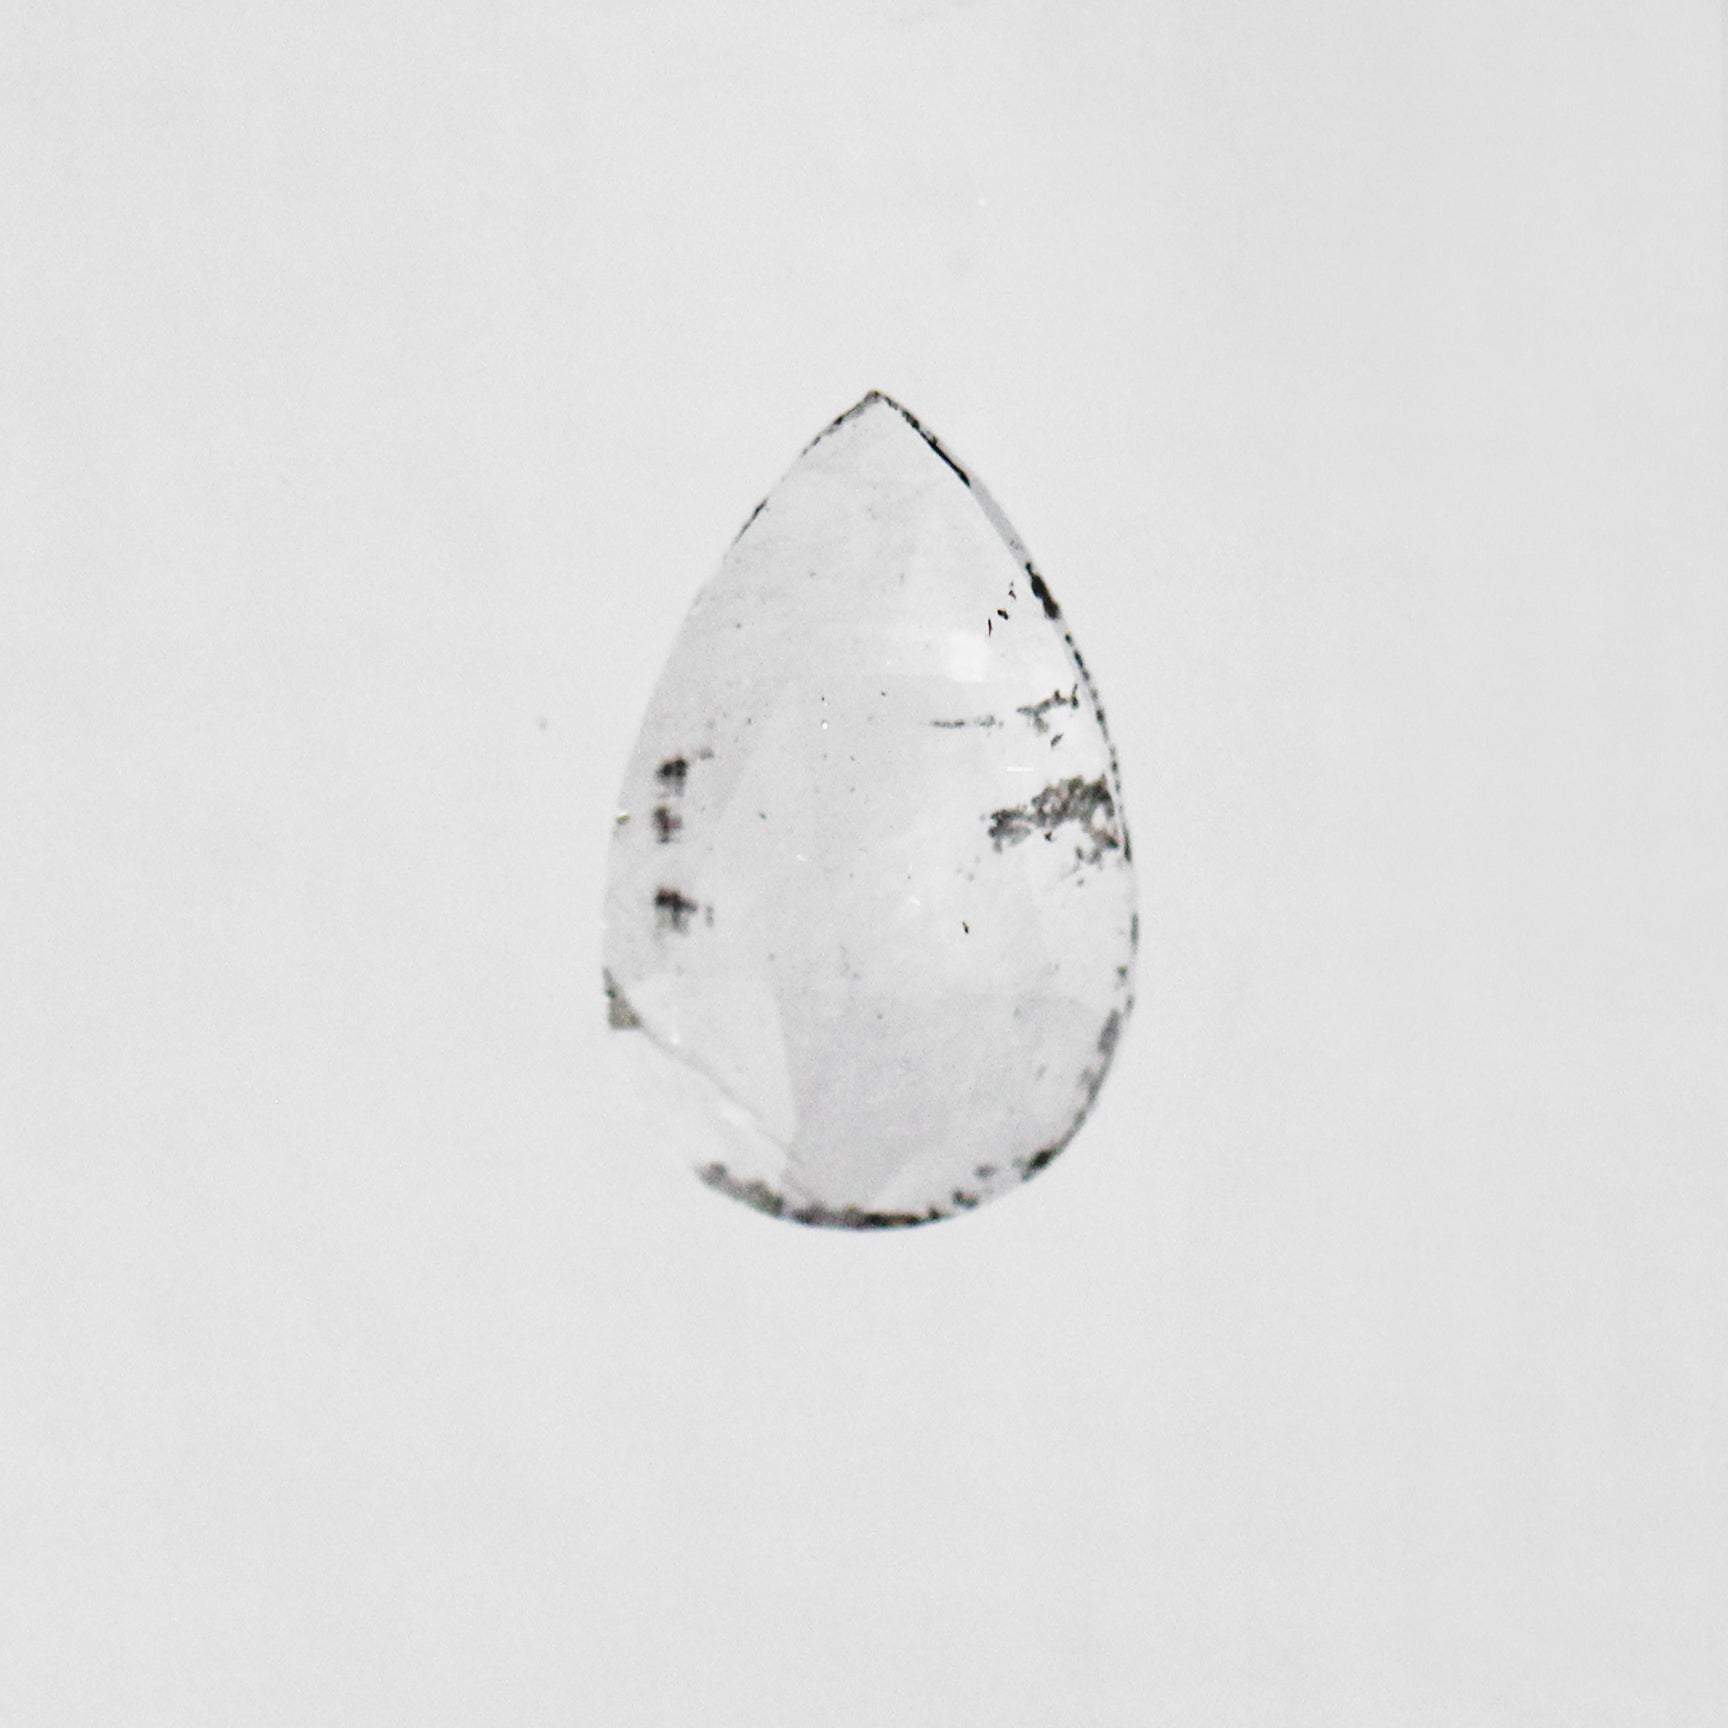 .53 Carat Pear Diamond- Inventory Code PRC53 - Celestial Diamonds ® by Midwinter Co.